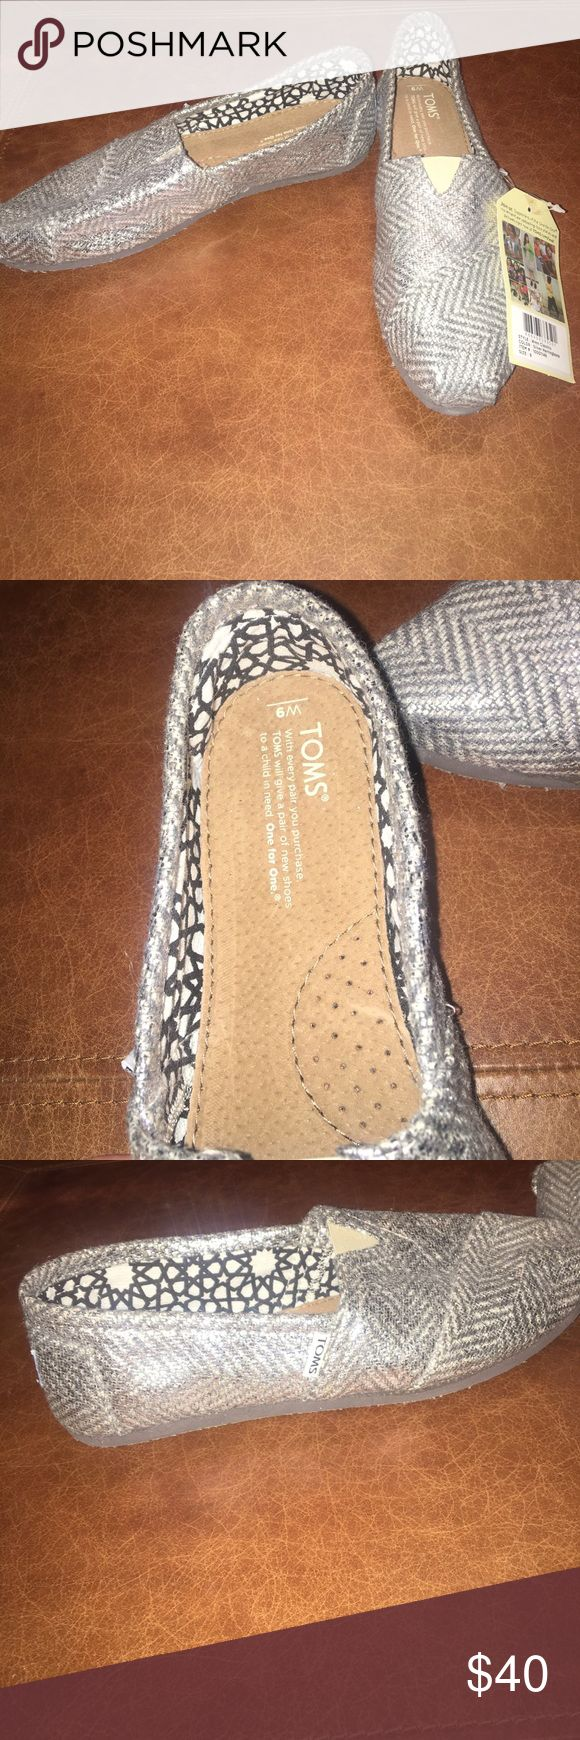 NWT Toms!! NWT Silver Herringbone women's Toms!! Toms Shoes Flats & Loafers